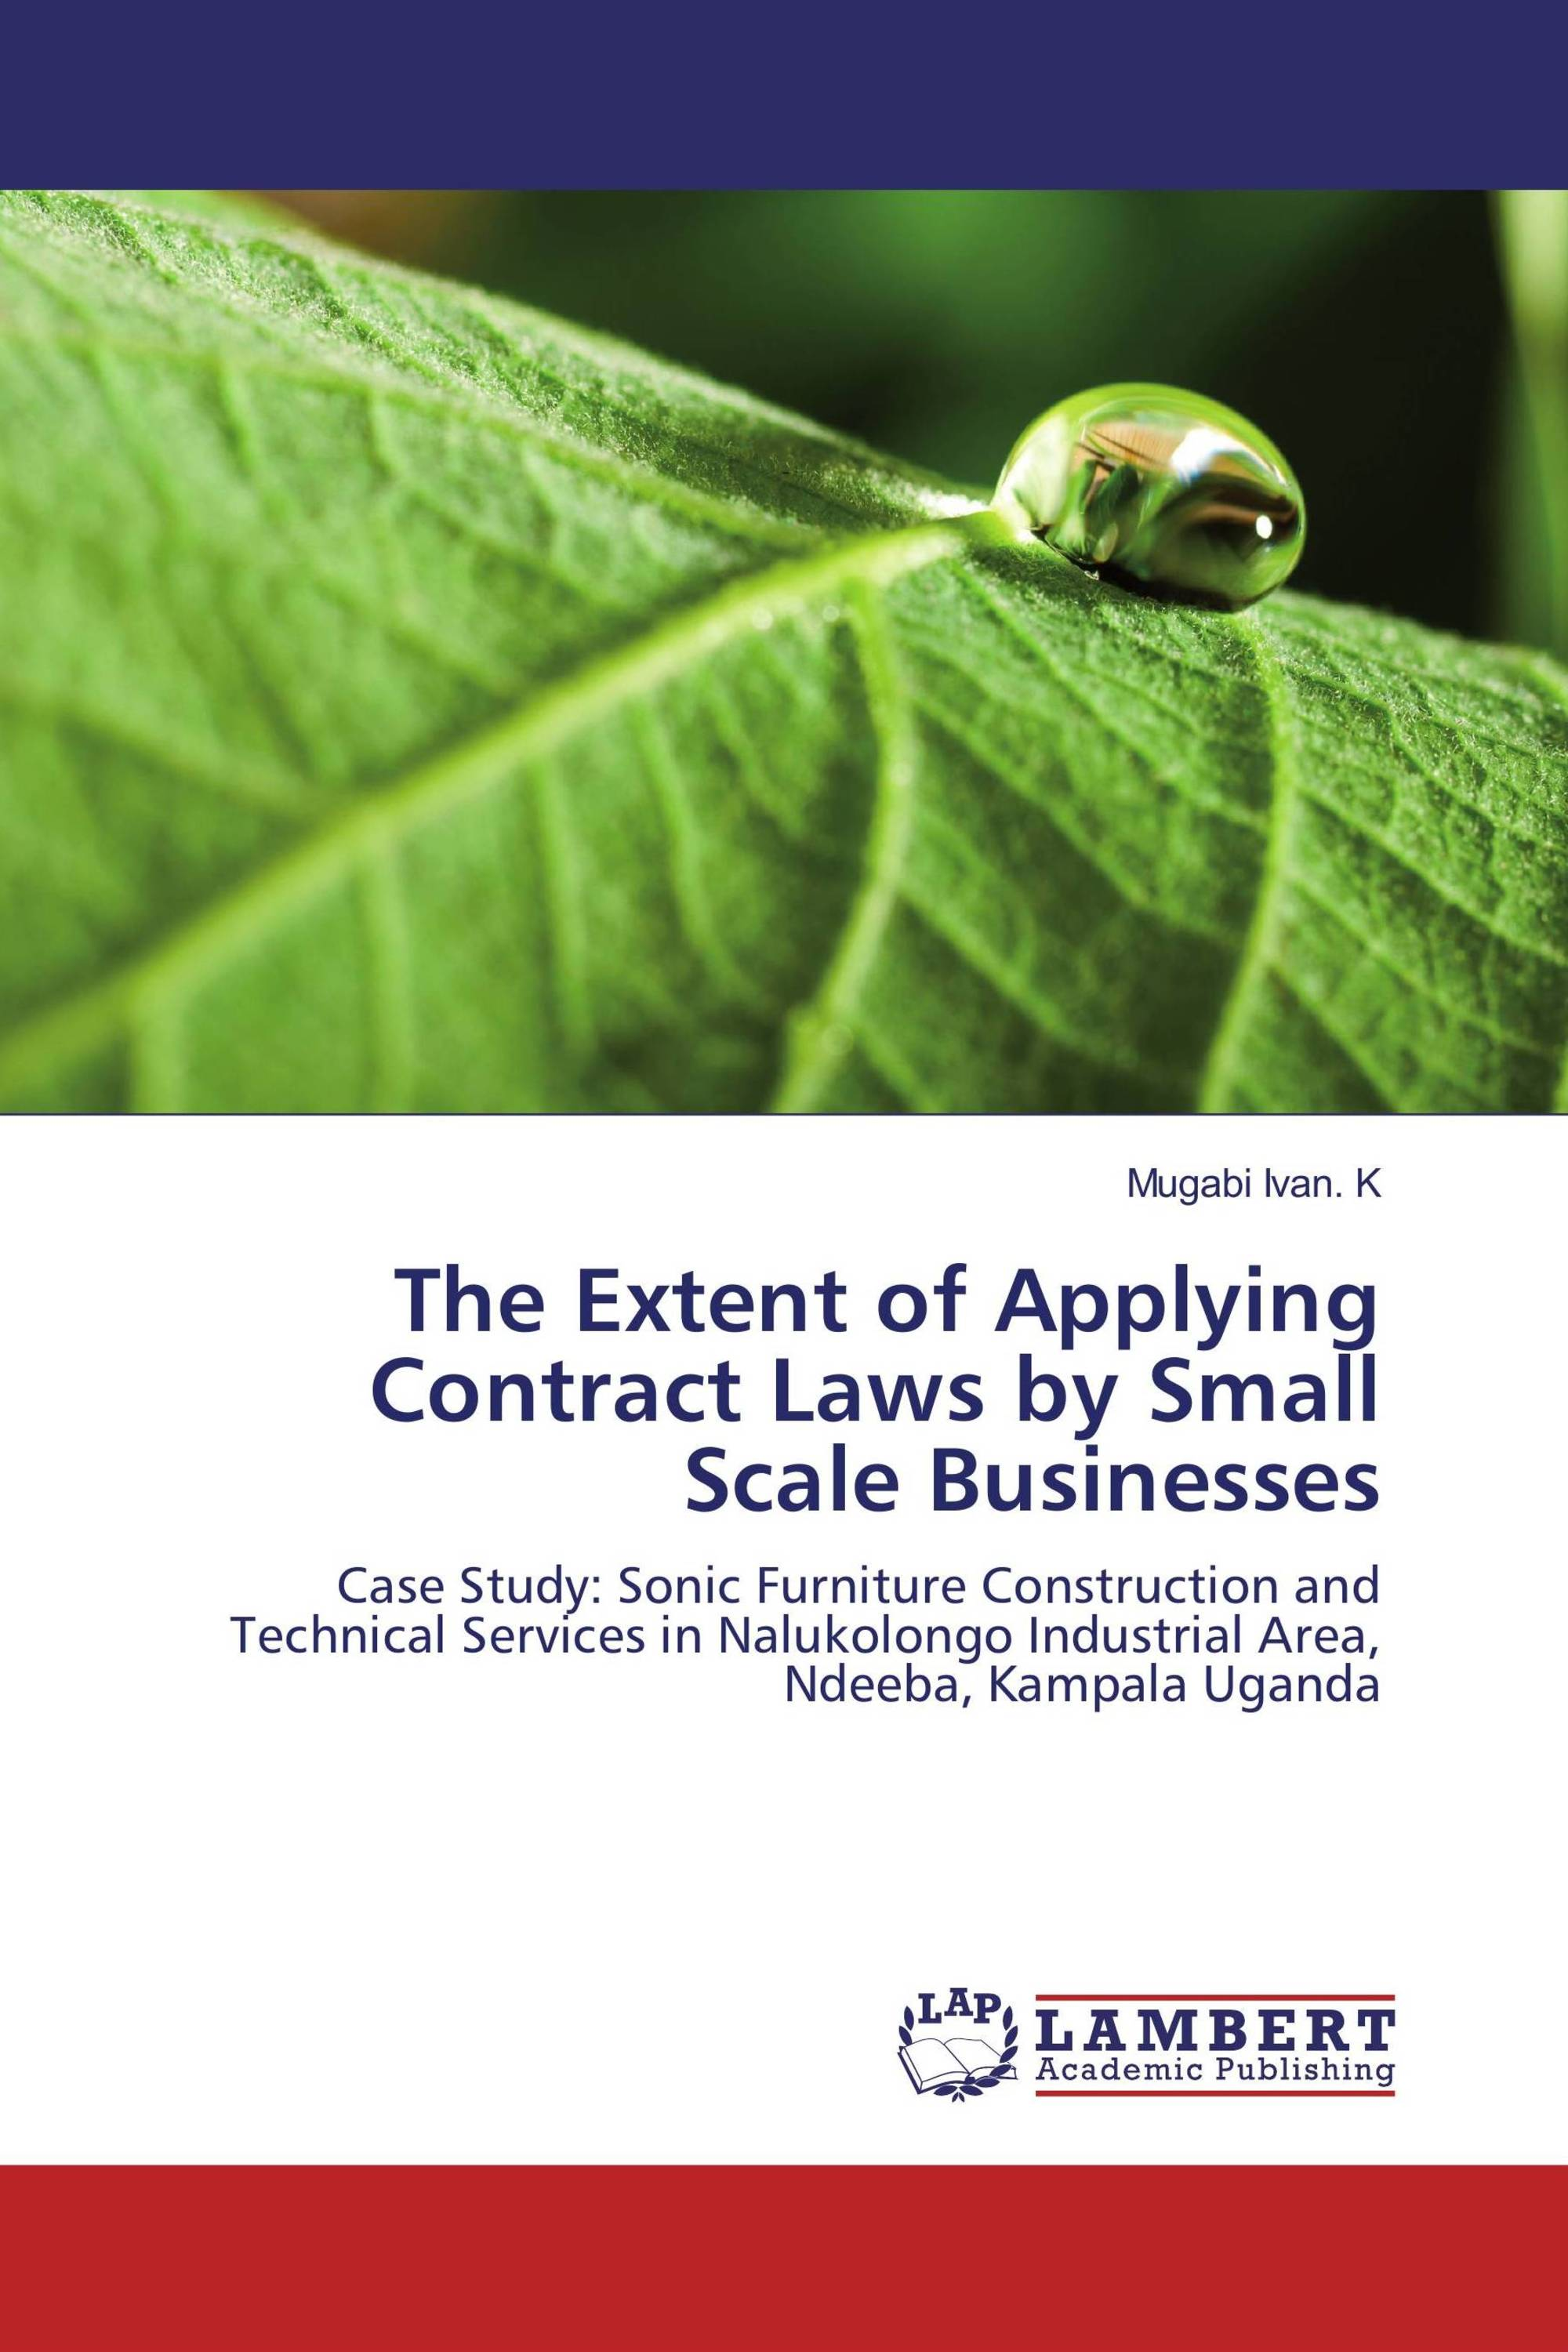 The Extent of Applying Contract Laws by Small Scale Businesses